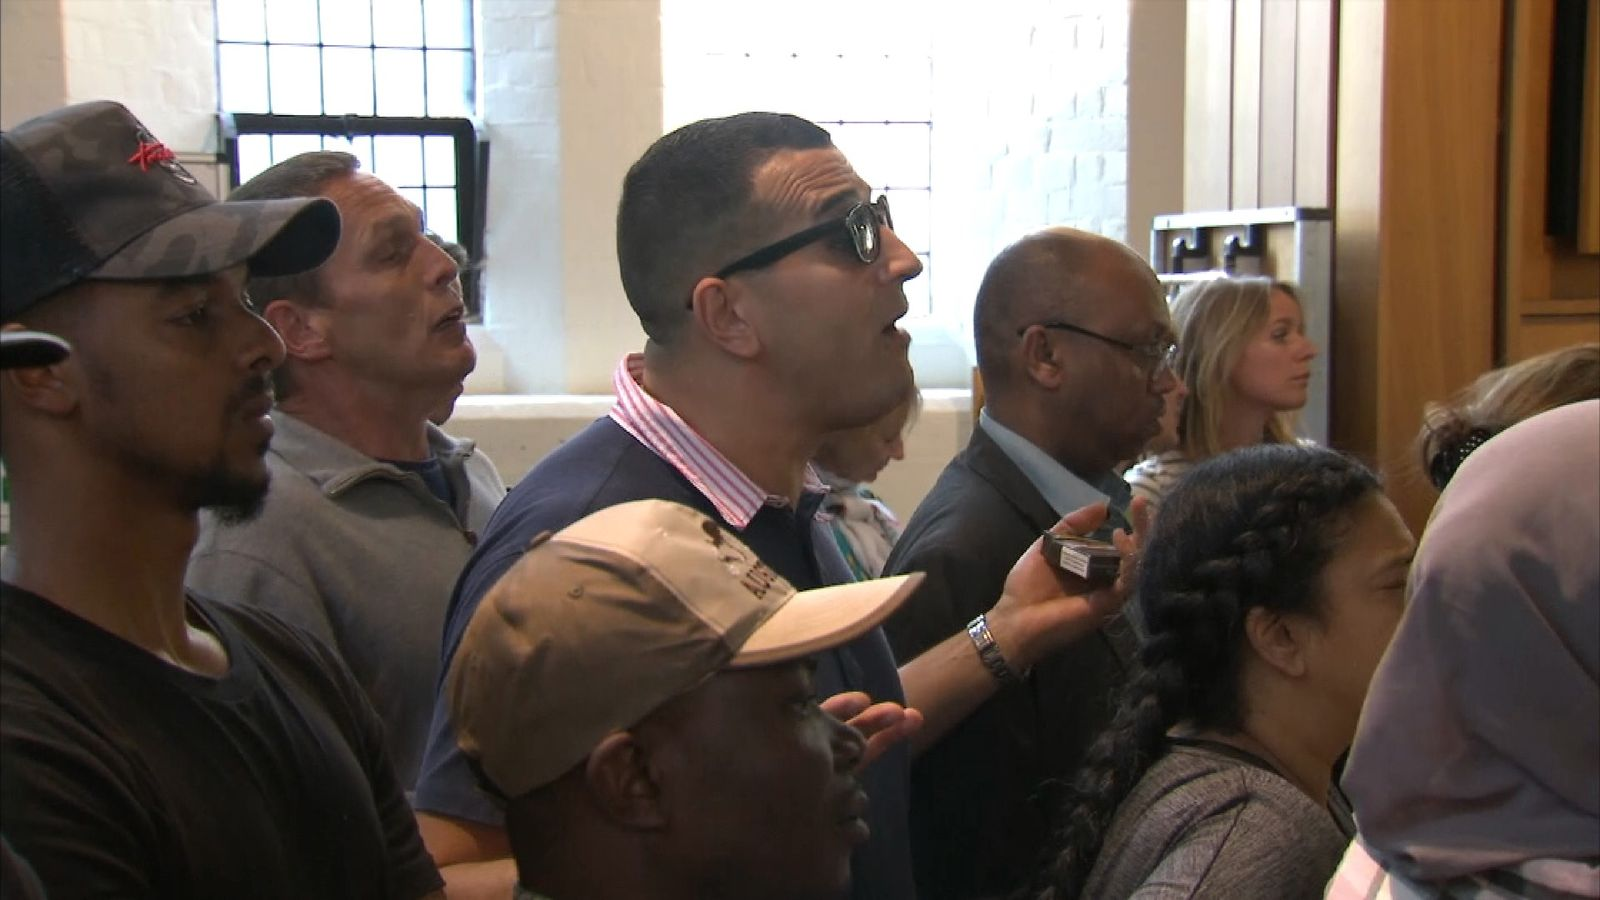 Angry residents confronted council leaders at the meeting